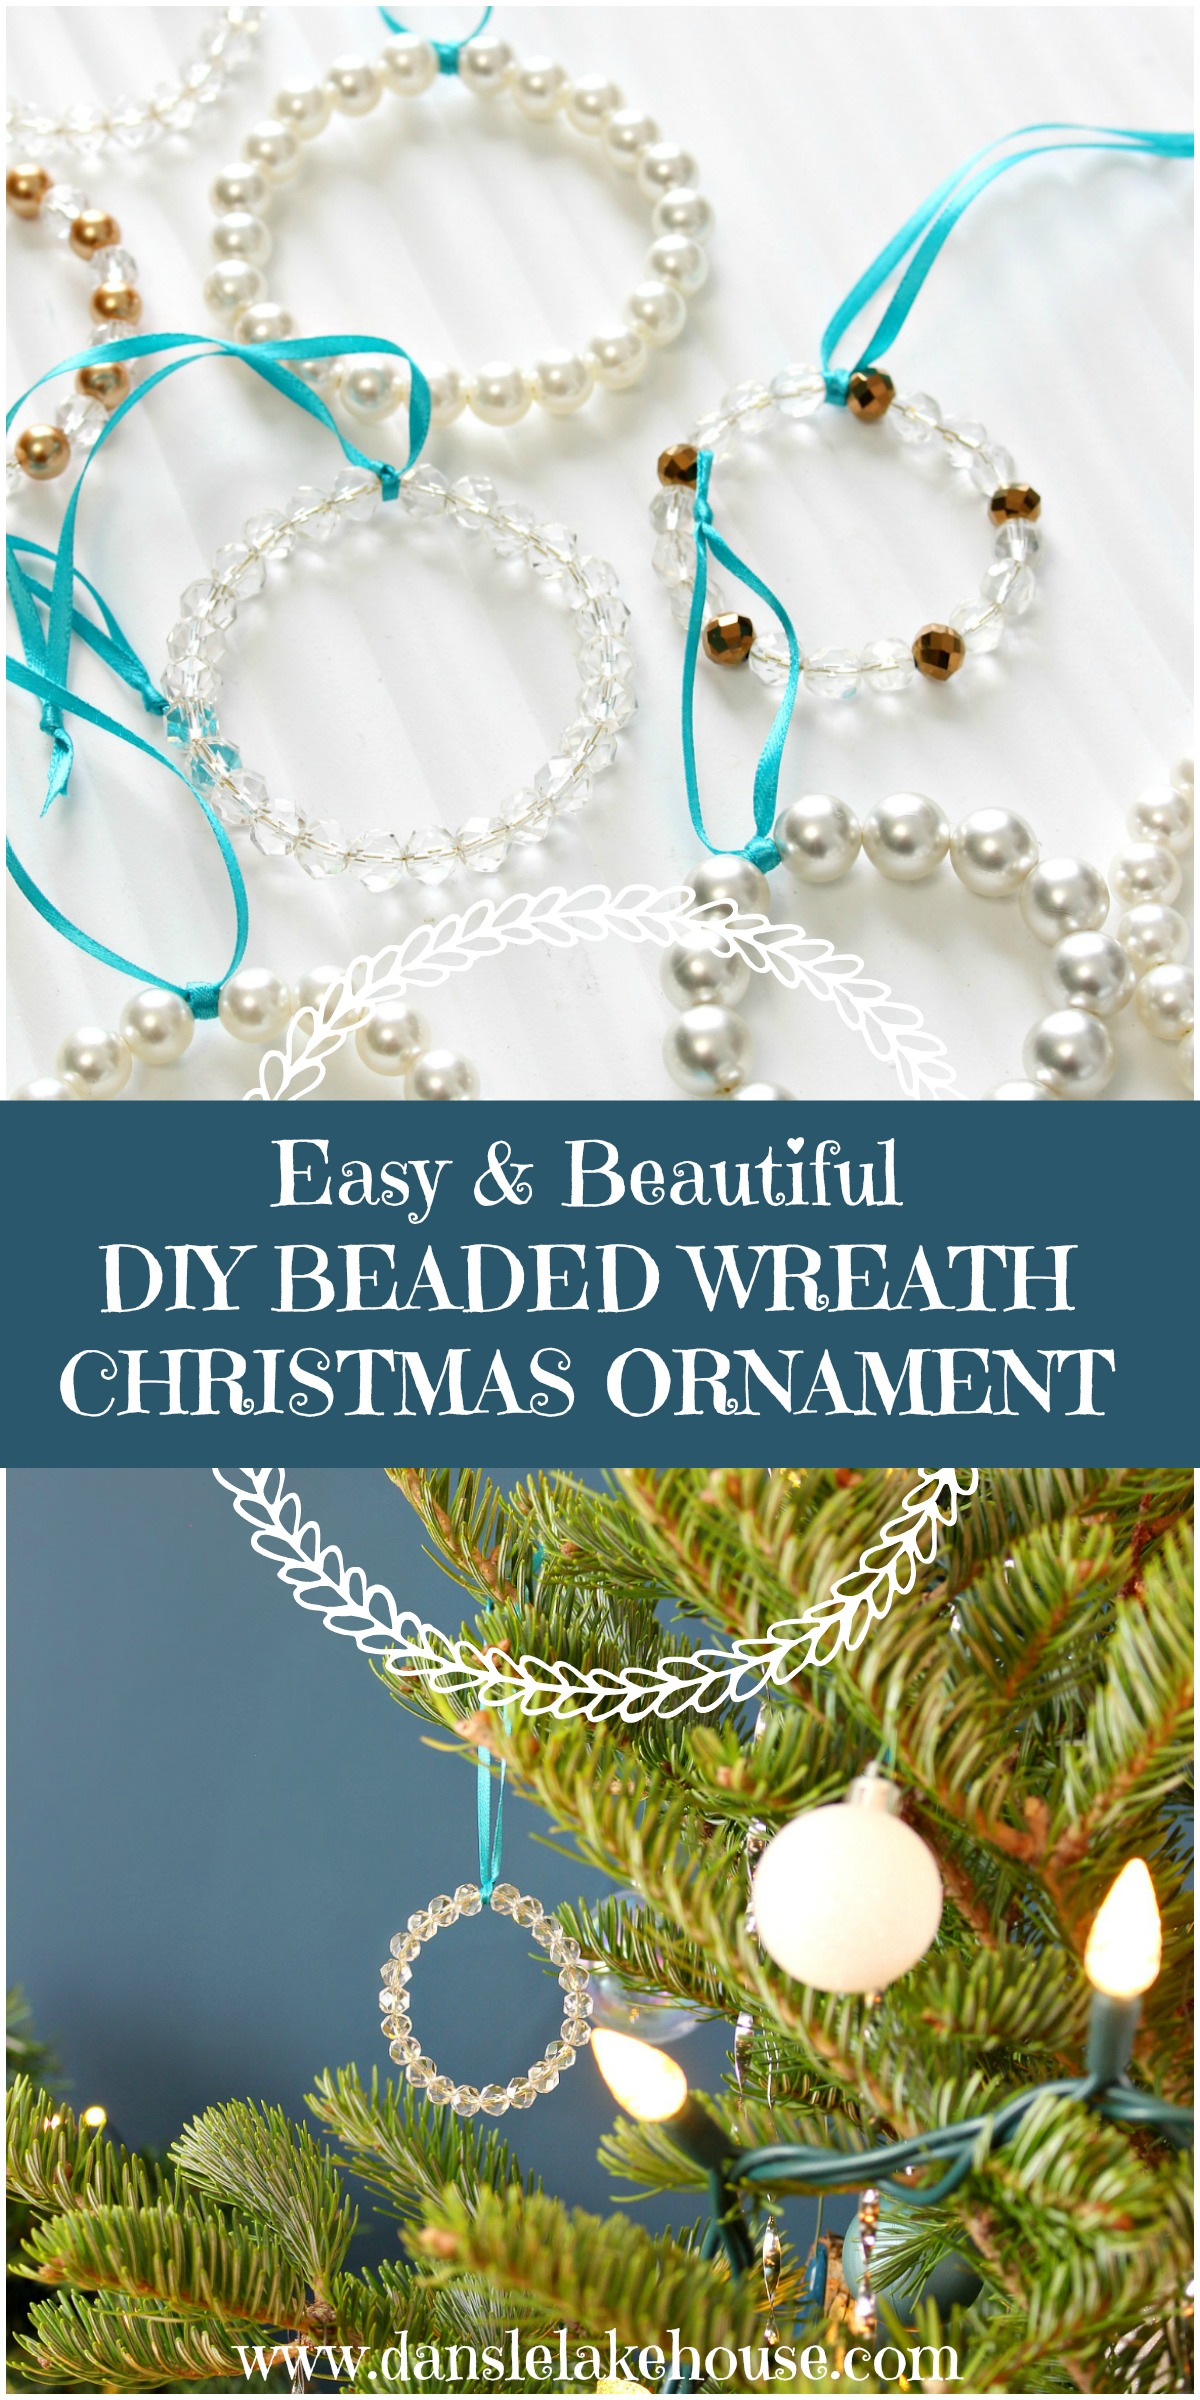 Easy DIY Beaded Wreath Christmas Ornament